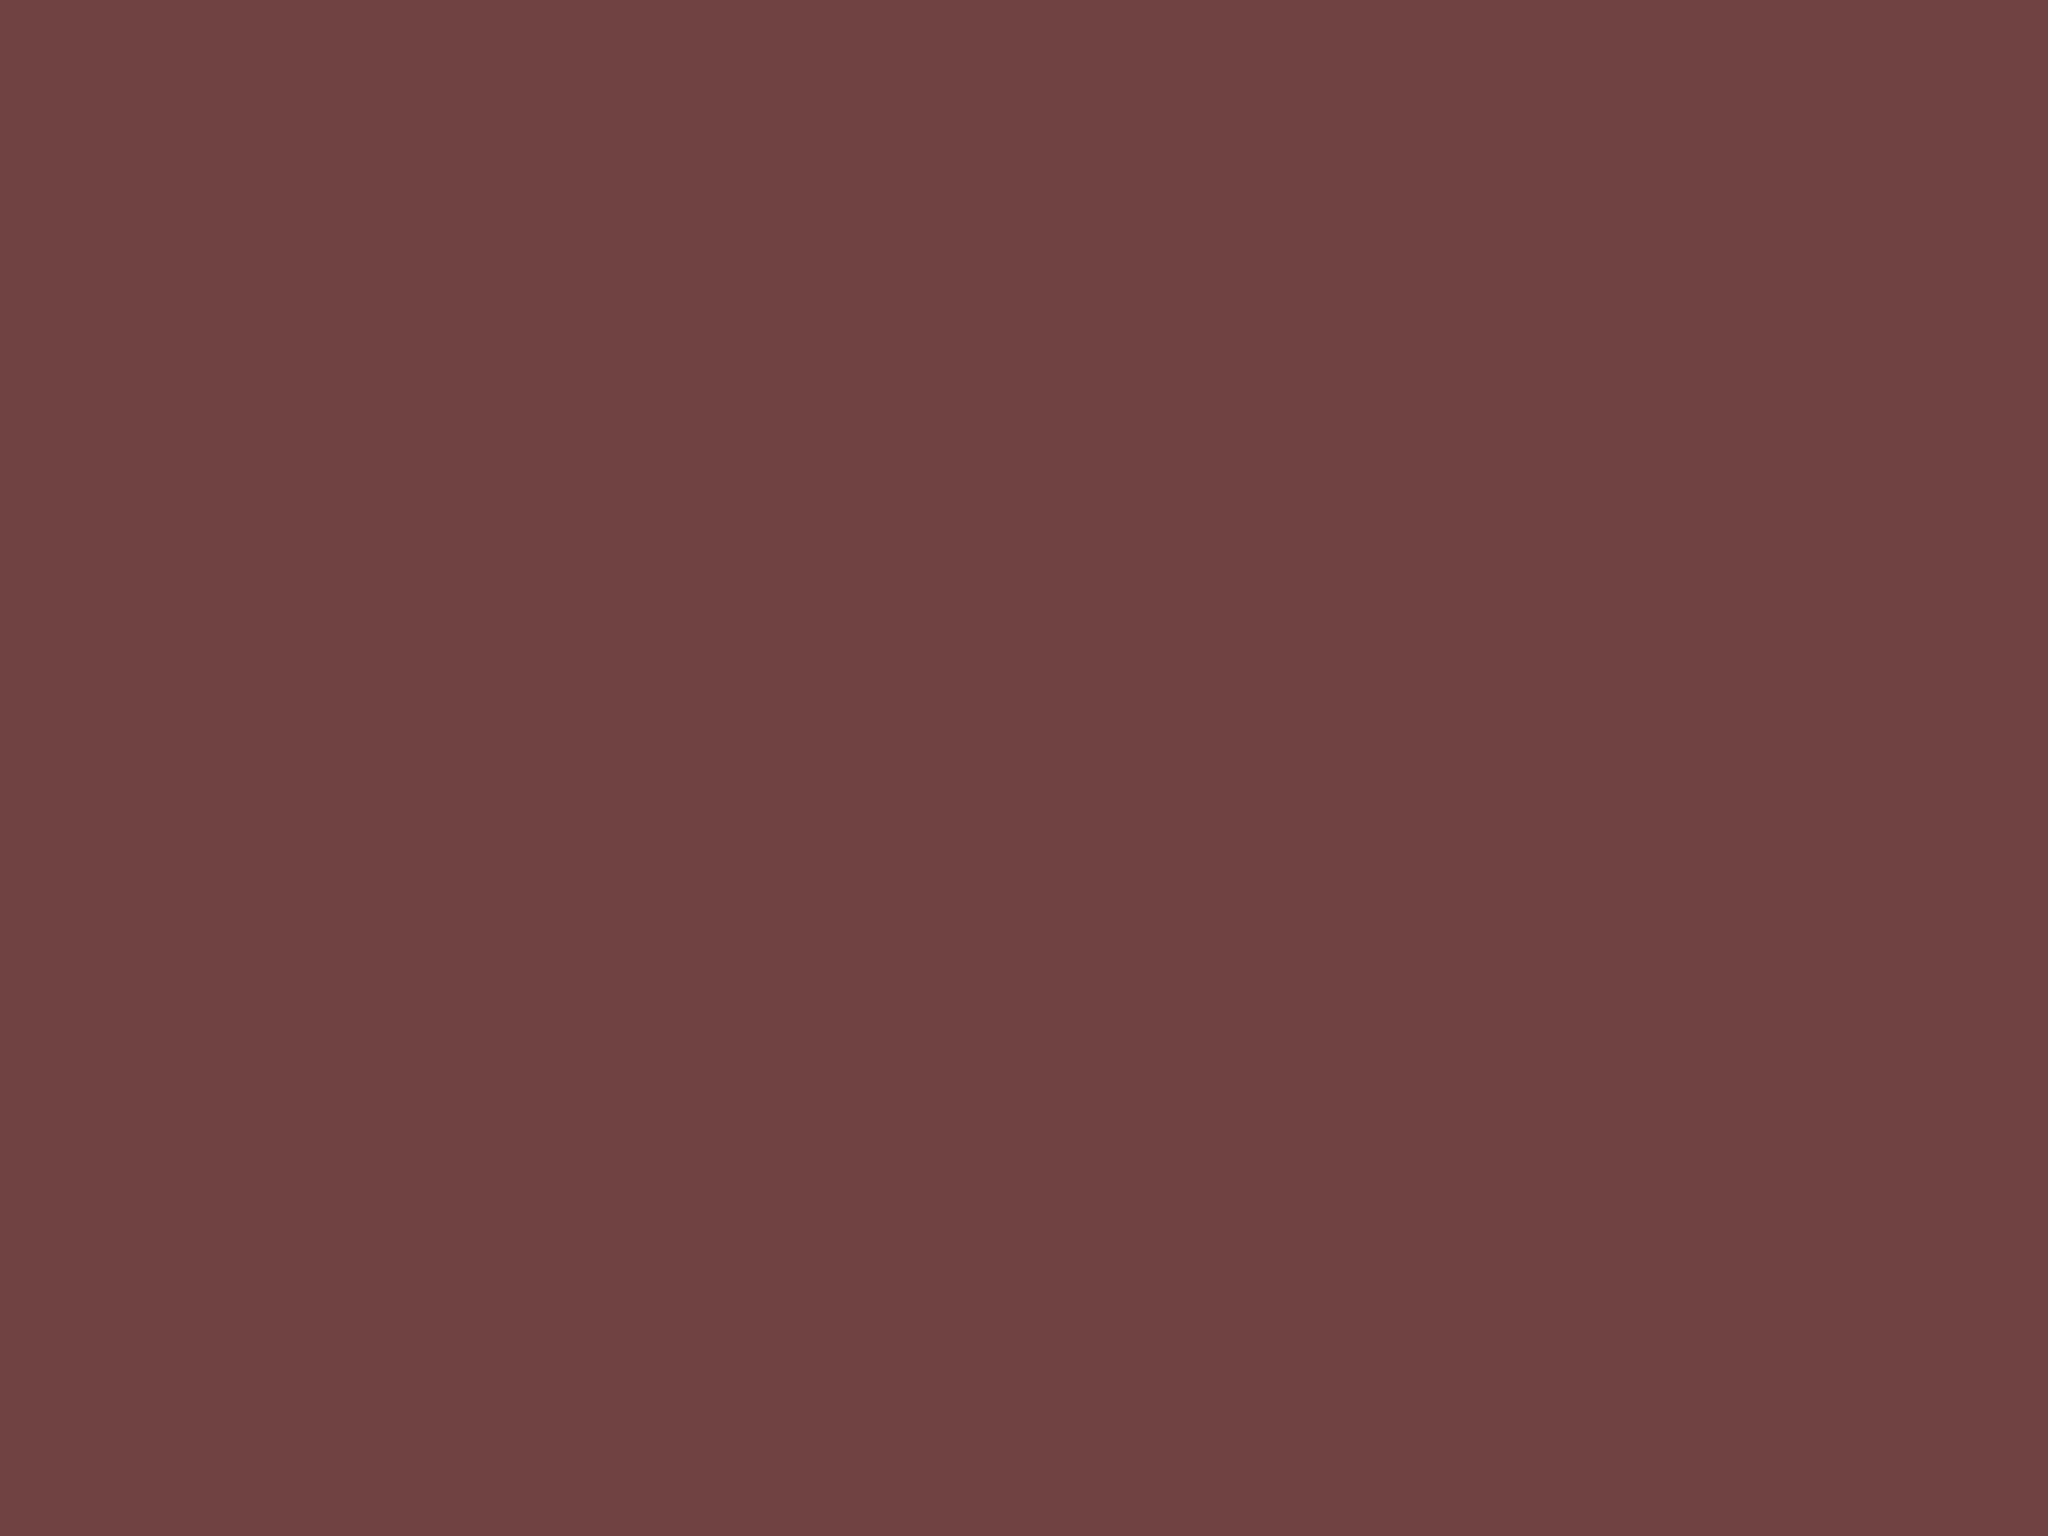 2048x1536 Deep Coffee Solid Color Background